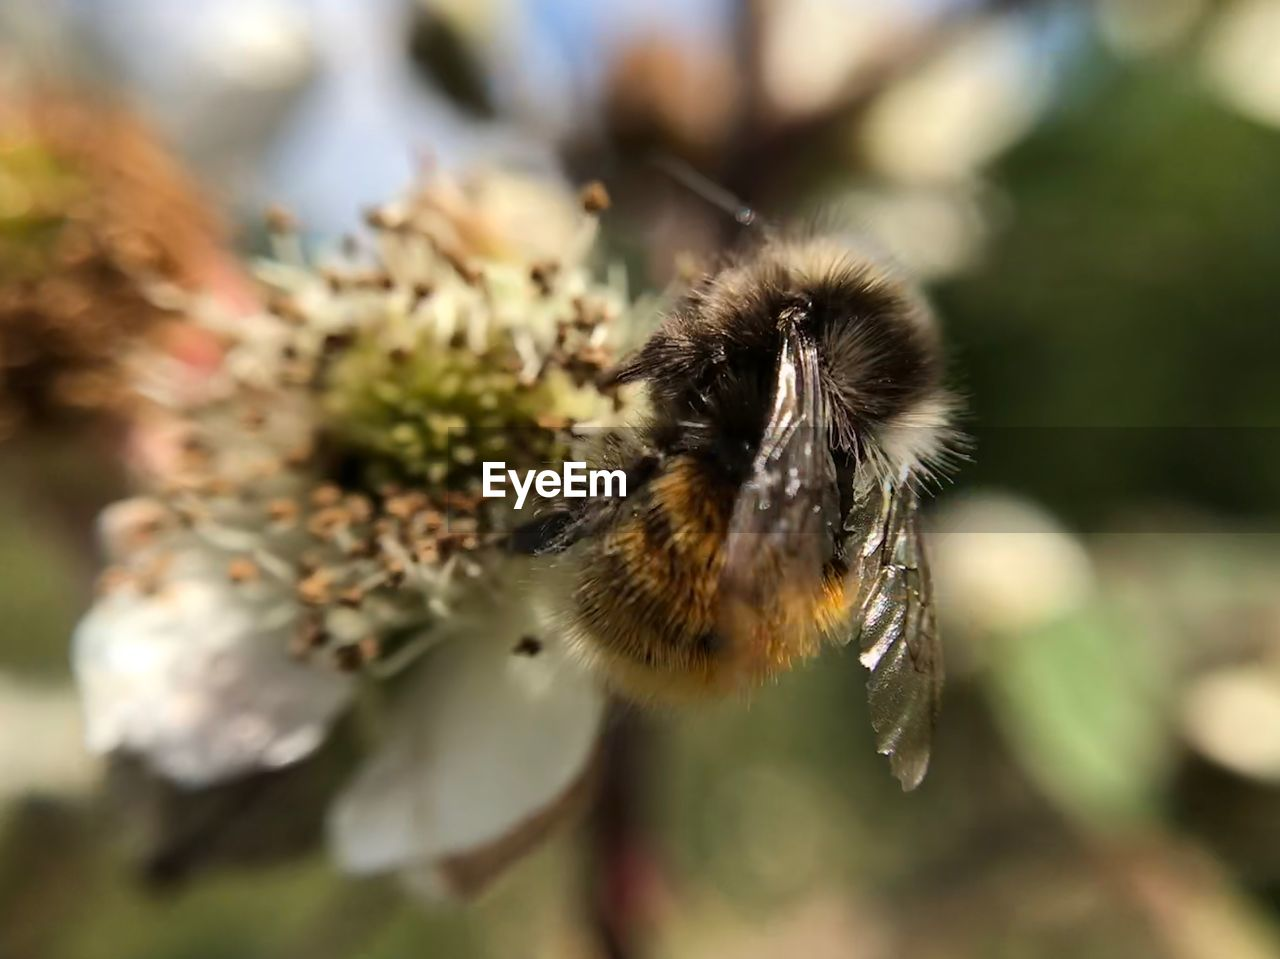 invertebrate, insect, animal themes, one animal, animal, bee, animal wildlife, animals in the wild, flower, plant, close-up, beauty in nature, flowering plant, selective focus, day, no people, nature, fragility, focus on foreground, growth, flower head, pollination, bumblebee, outdoors